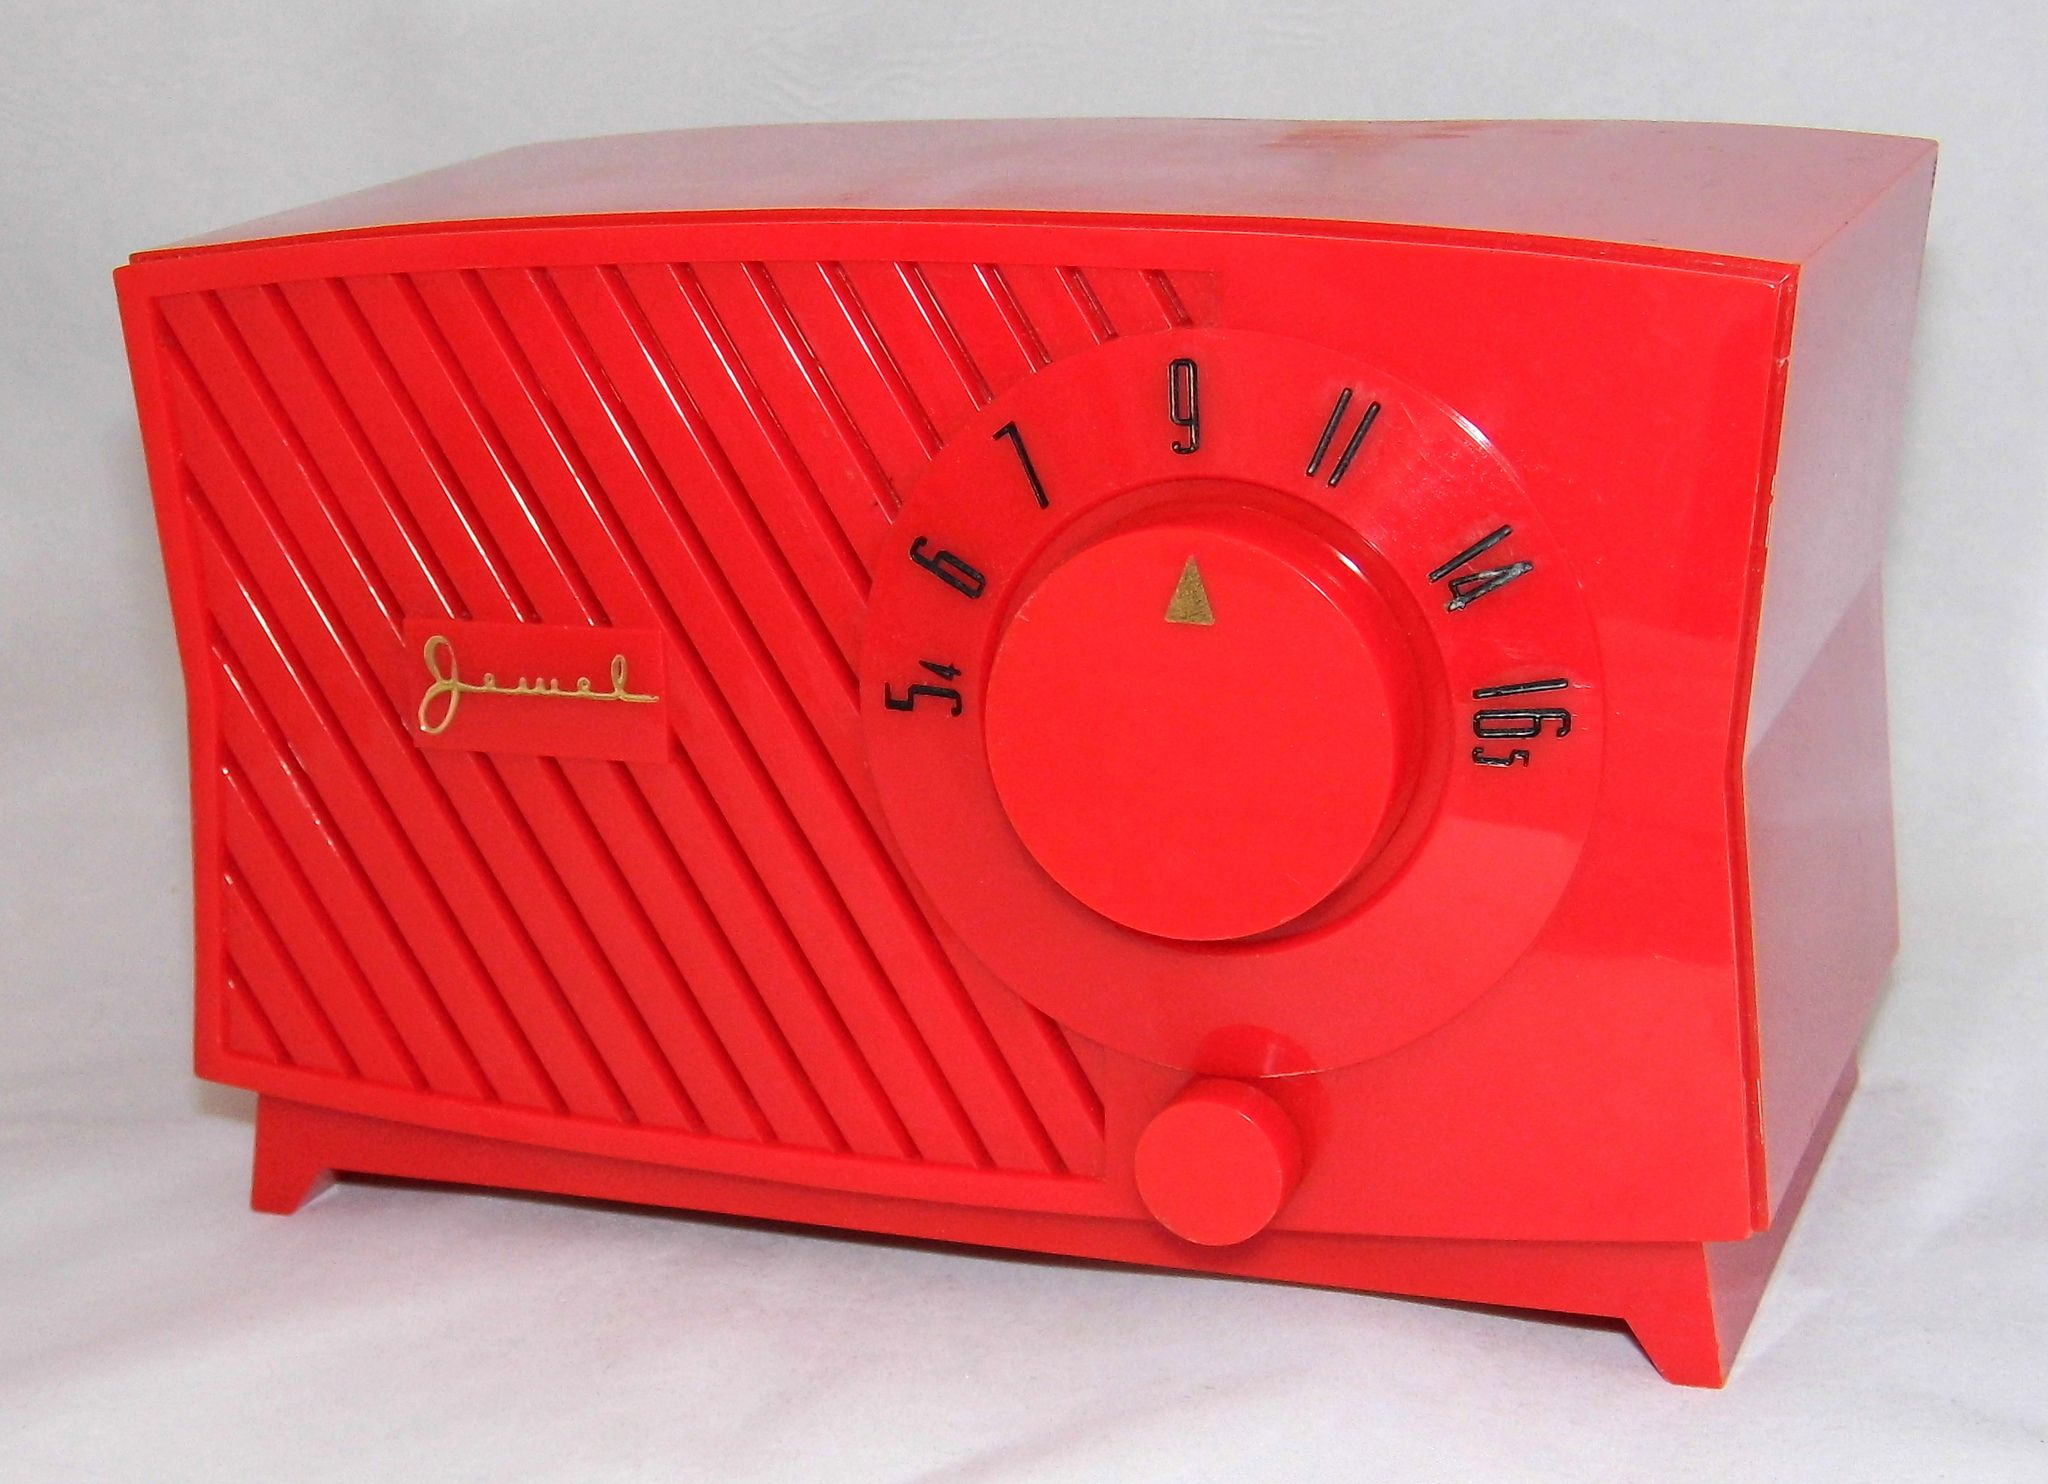 https://flic.kr/p/bZGyAW   Vintage Jewel Red Plastic Table Radio, AM Band Only, Made In USA